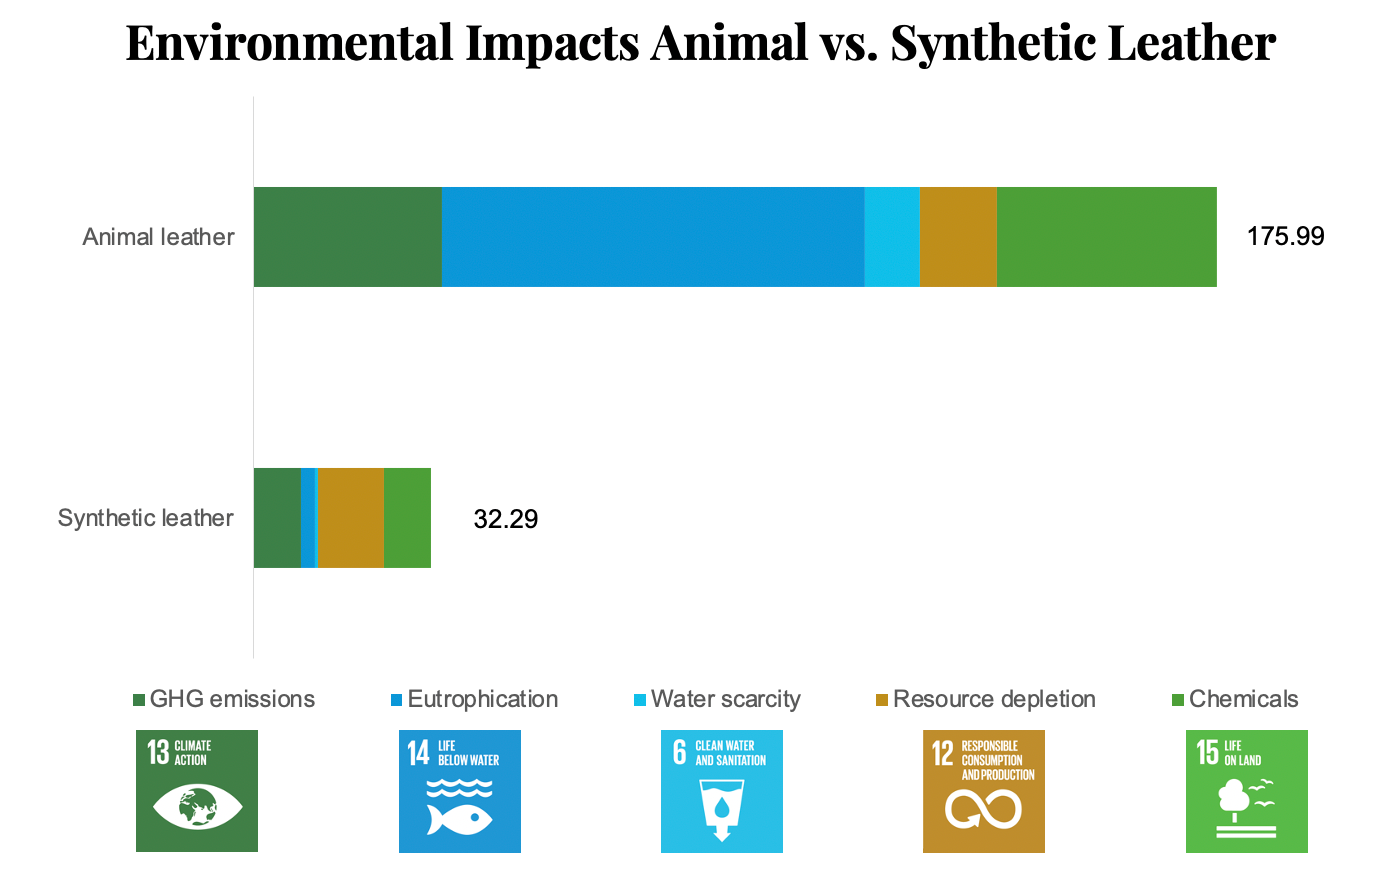 Environmental Impact of Animal Leather vs. Synthetic Leather